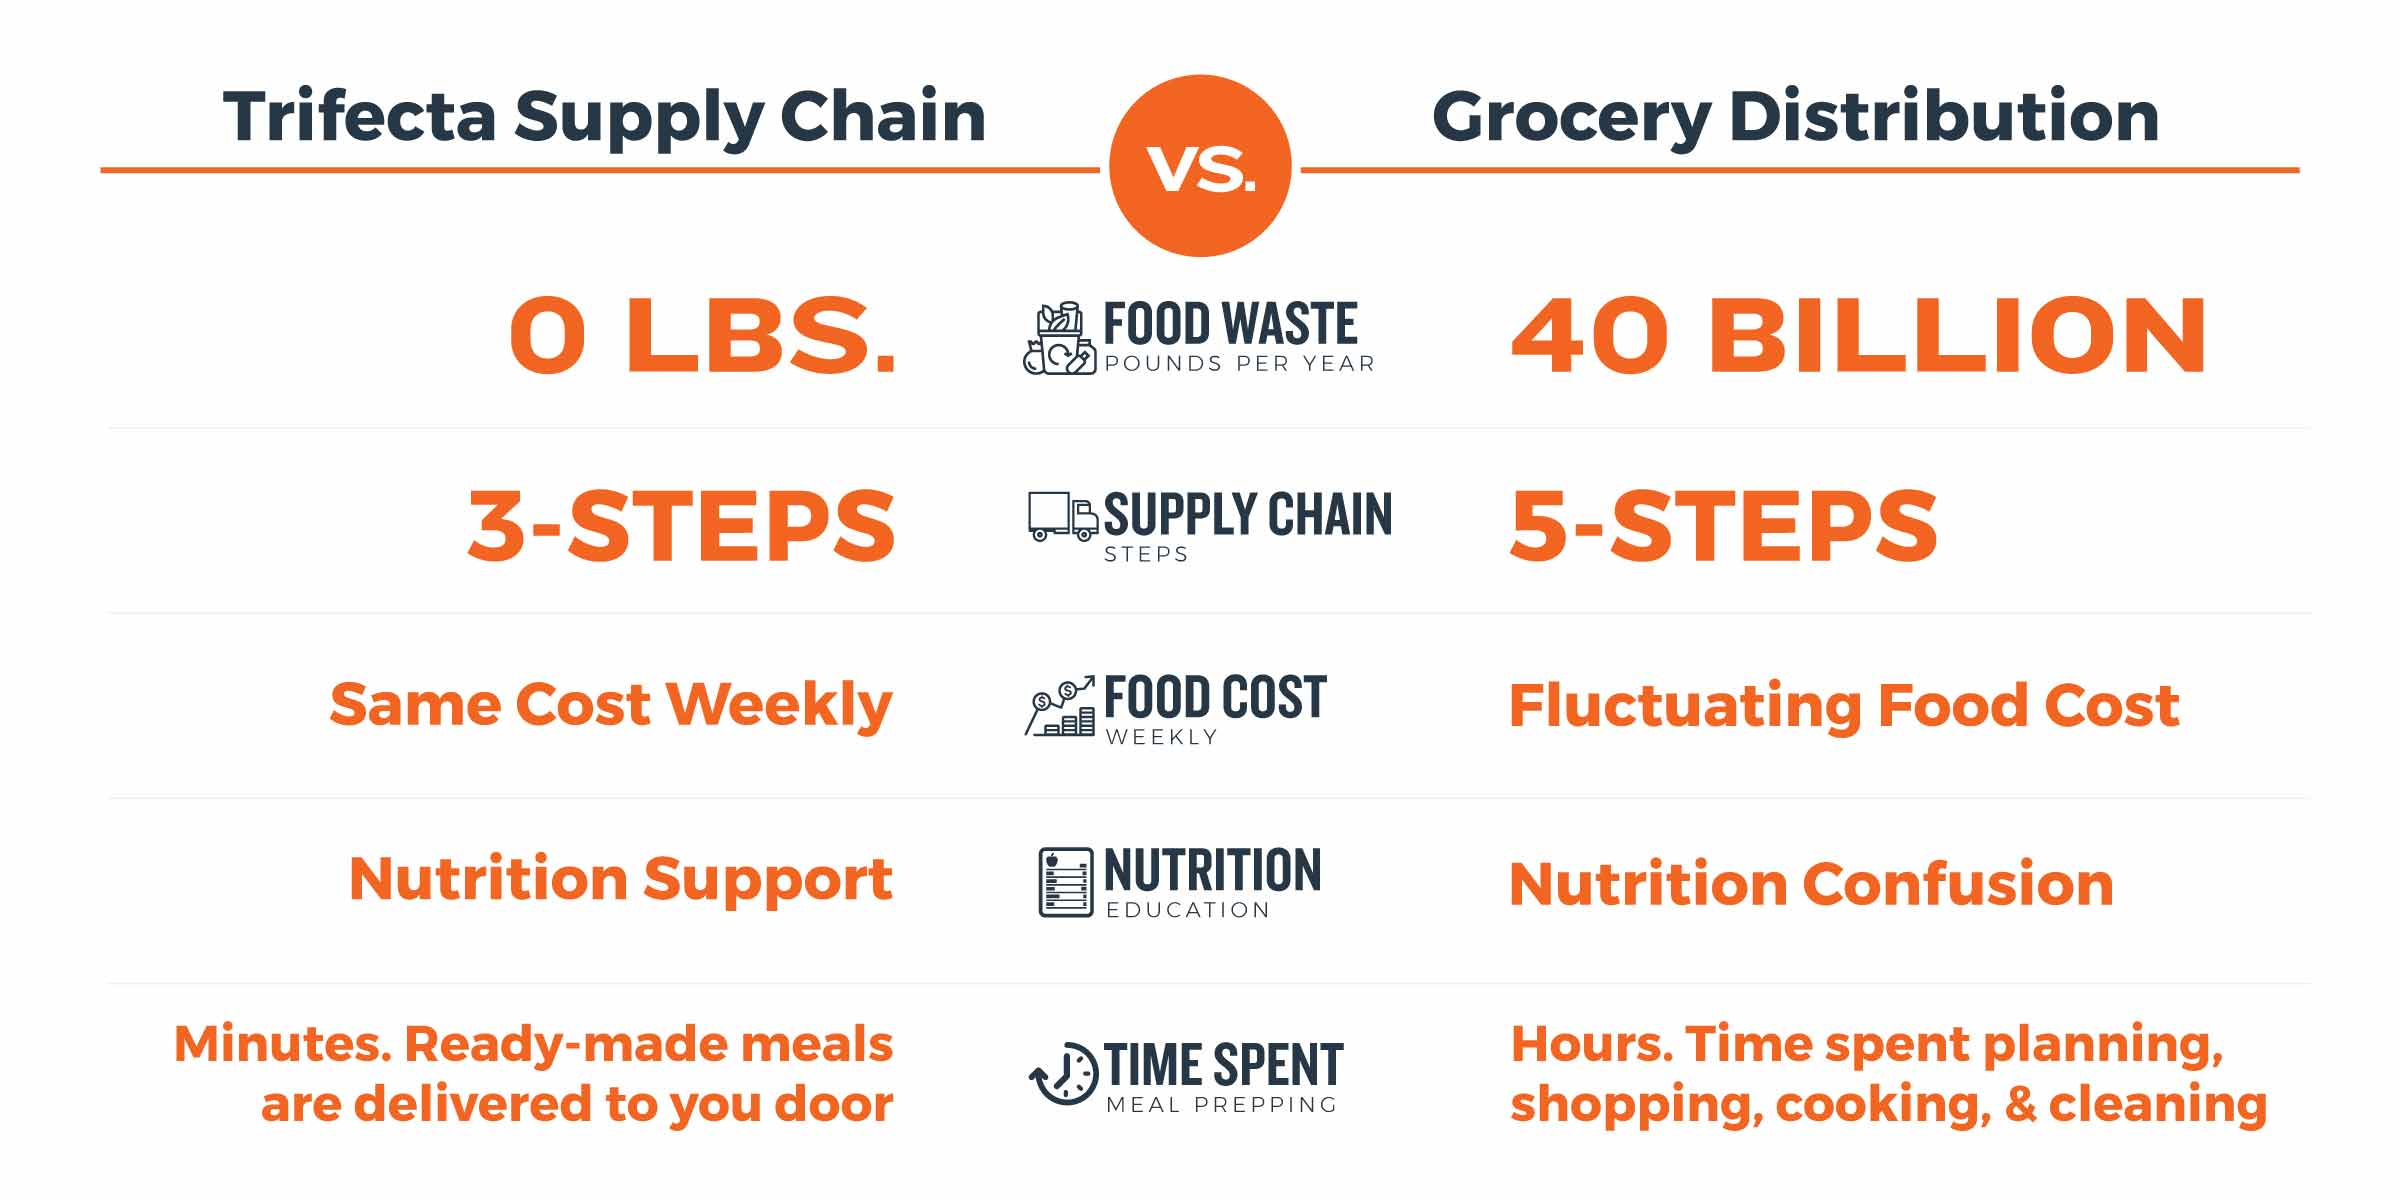 Trifecta vs Grocery